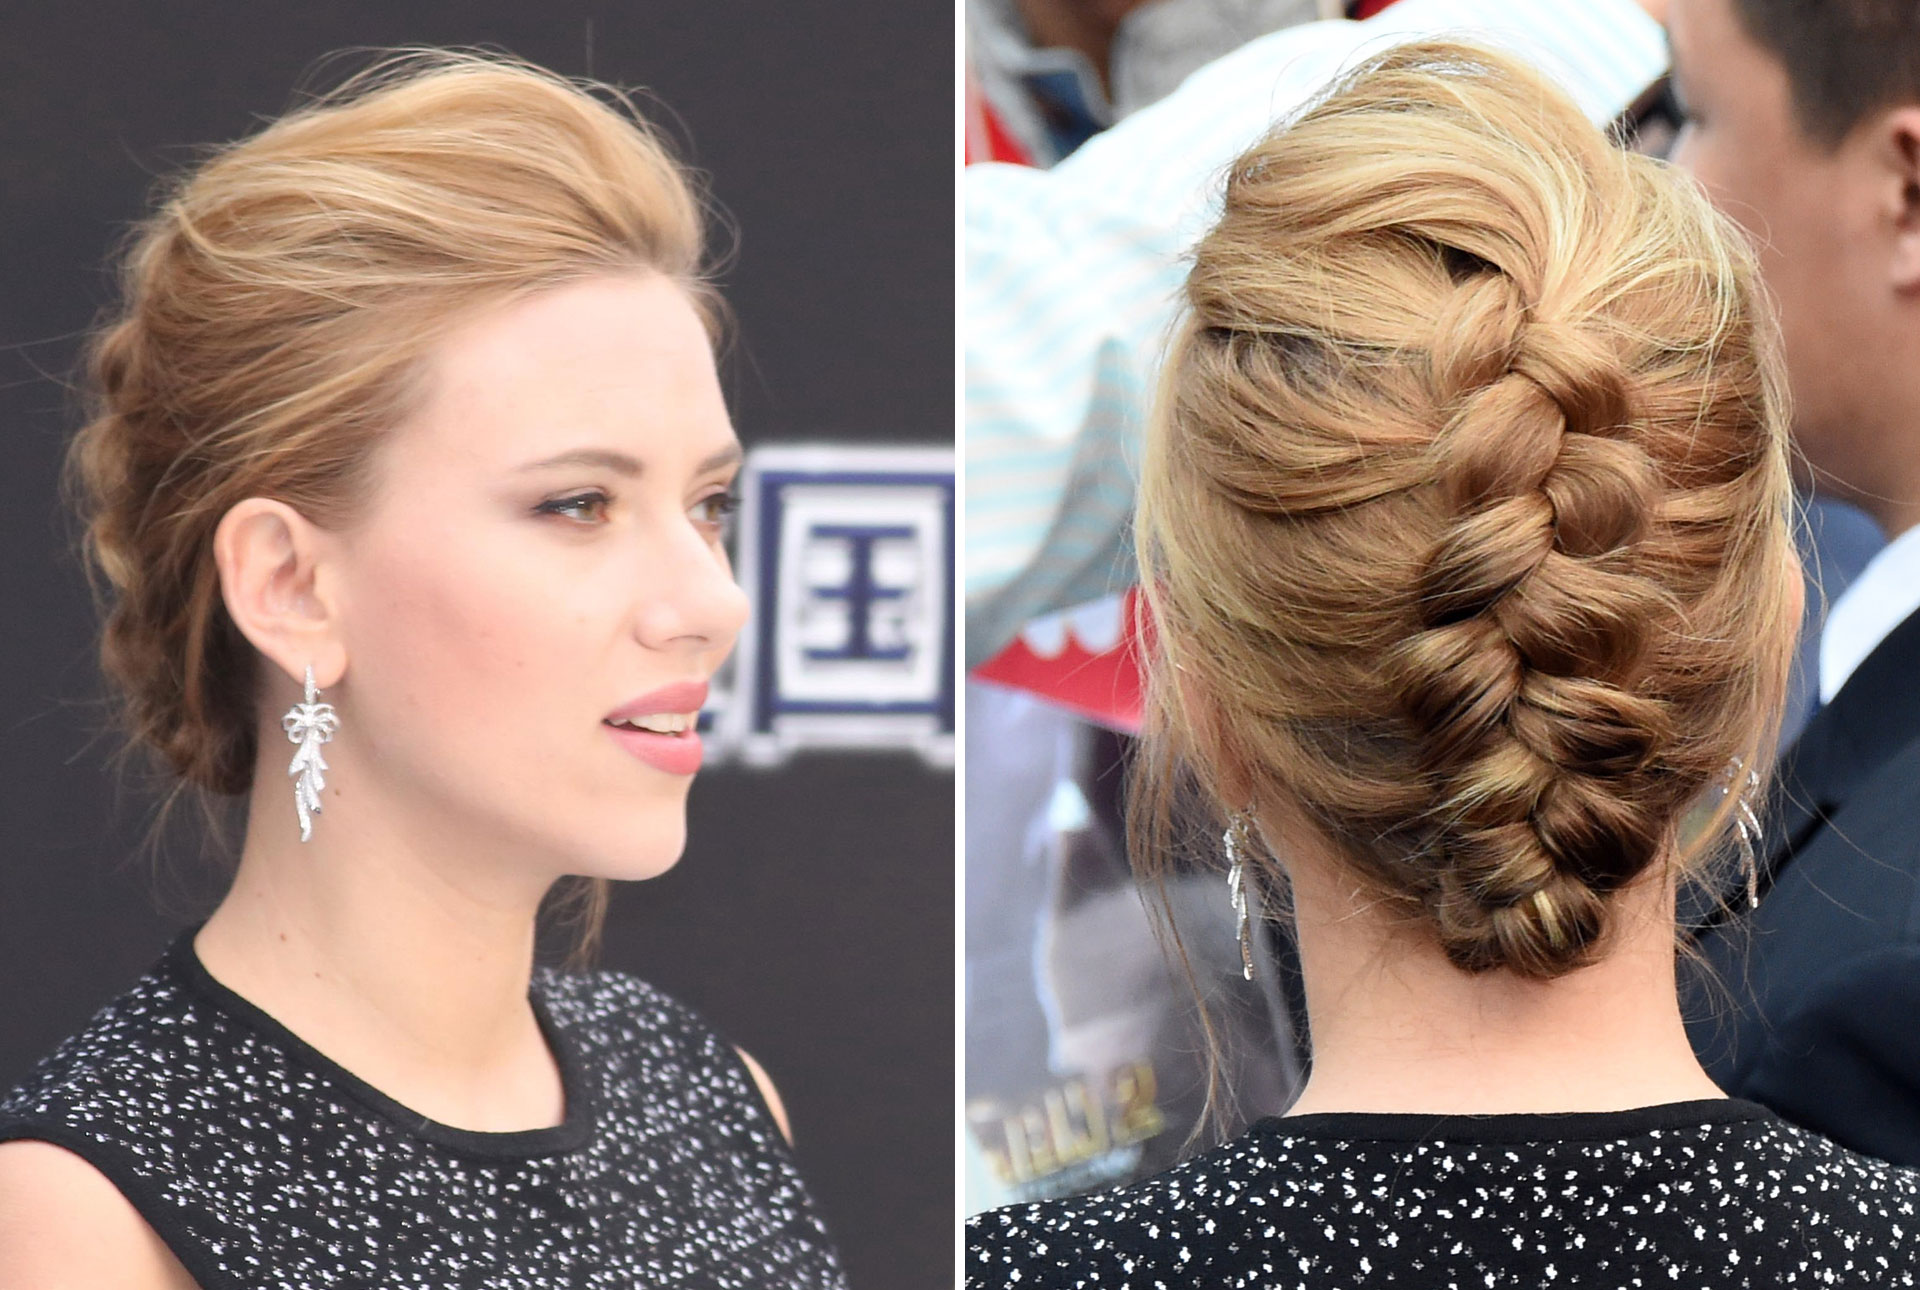 16 Best Guest Hairstyles For Every Kind Of Wedding